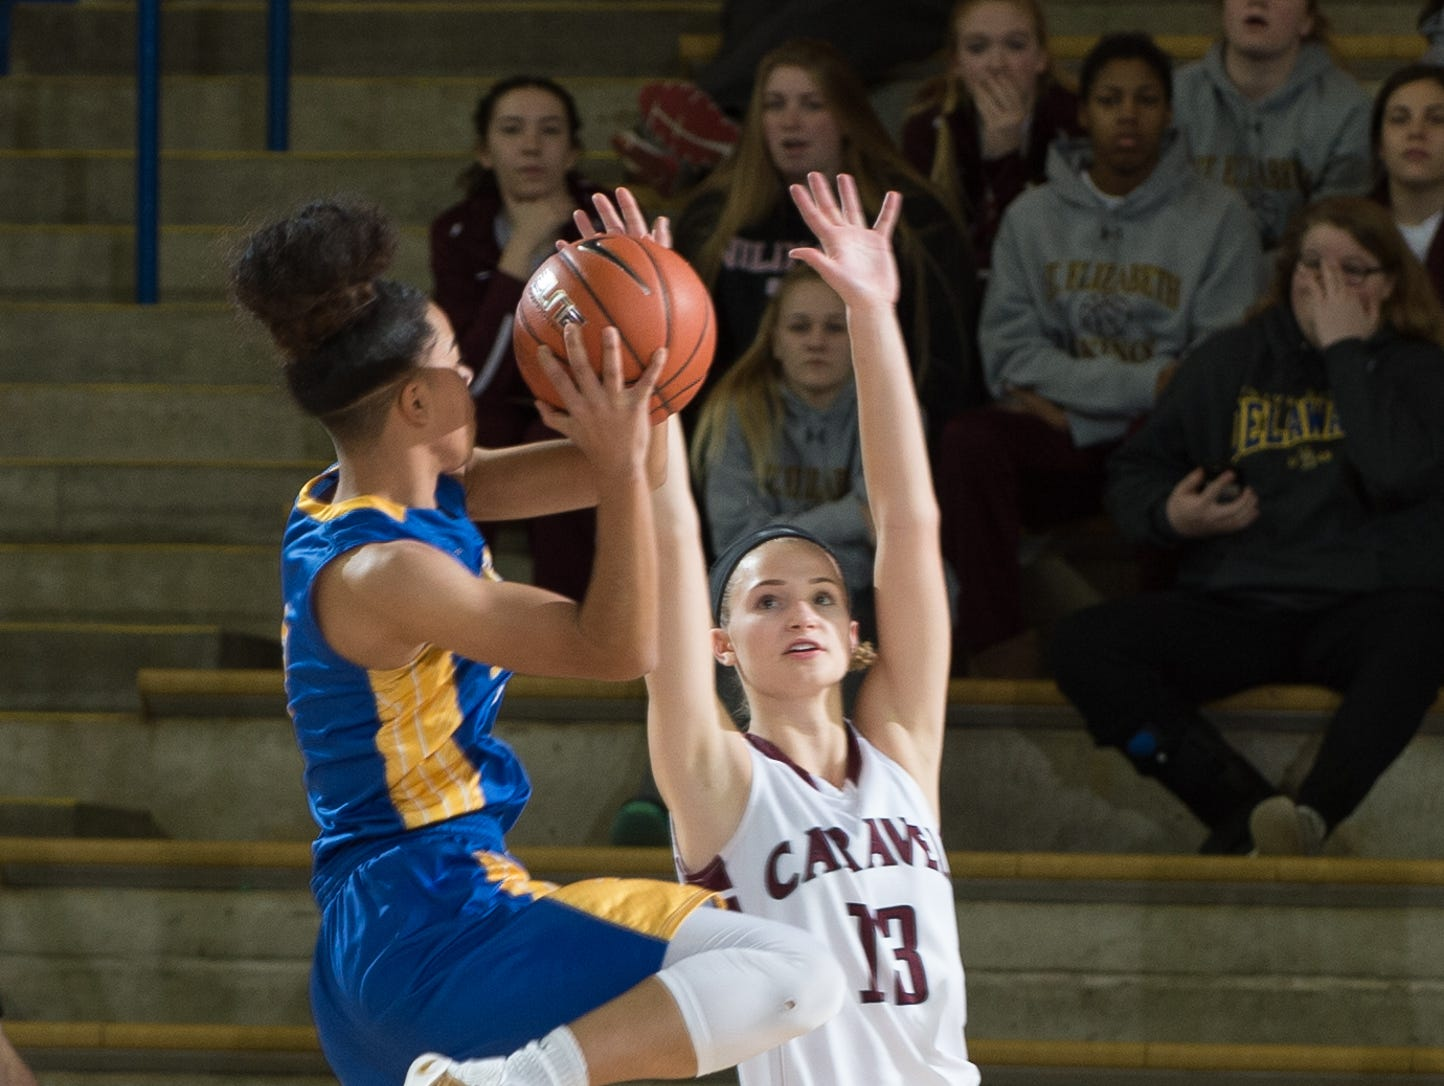 A.I. duPont's Lauryn Griffin (2) jumps up for a shot over Caravel's Grace Lange (13) during the first period of their game in the quarterfinals of DIAA Girls Basketball Tournament at the University of Delaware.